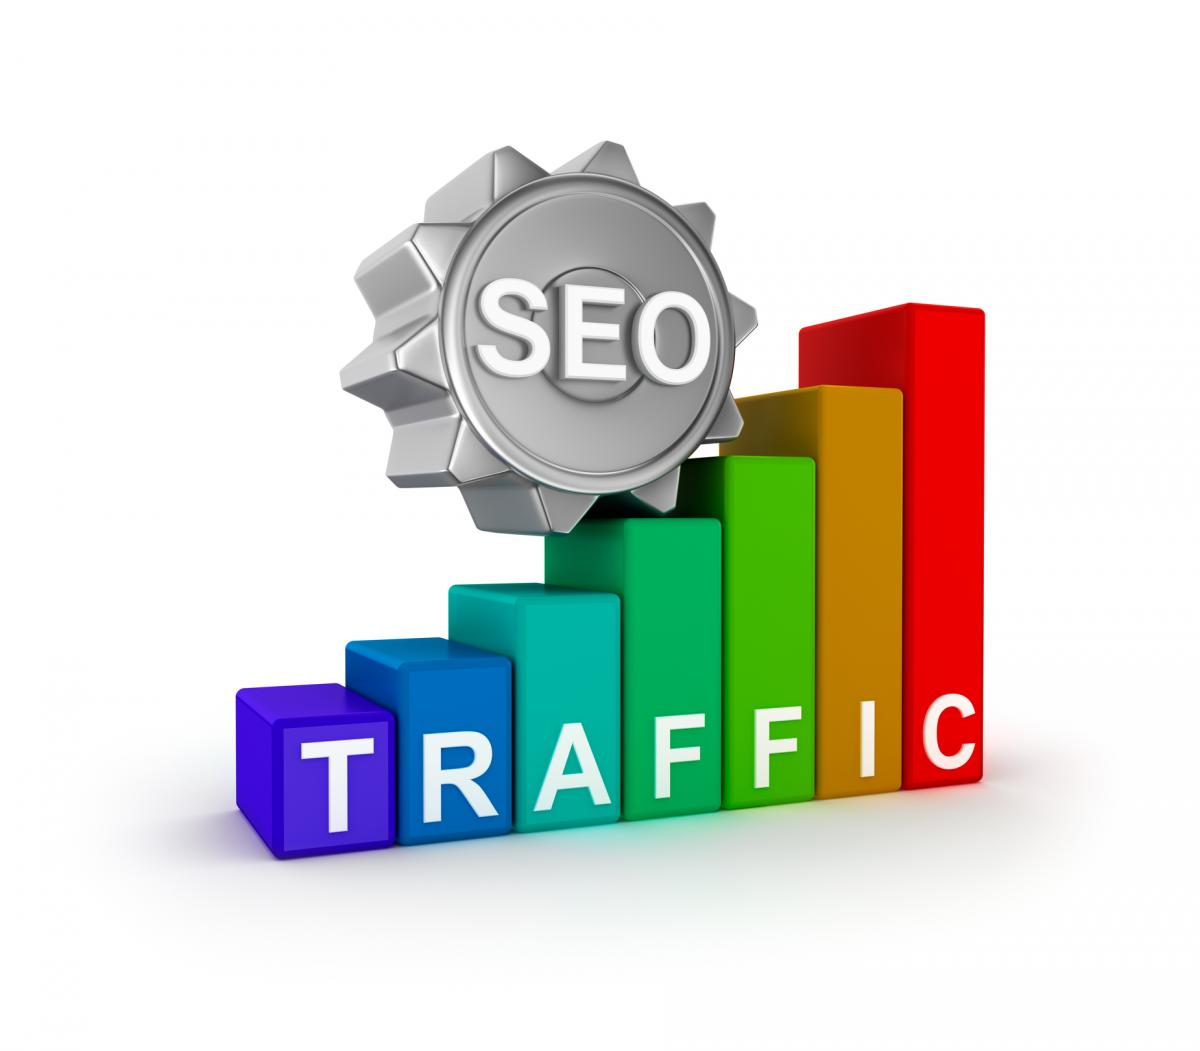 You can profit by helping your site to climb in search engine rankings